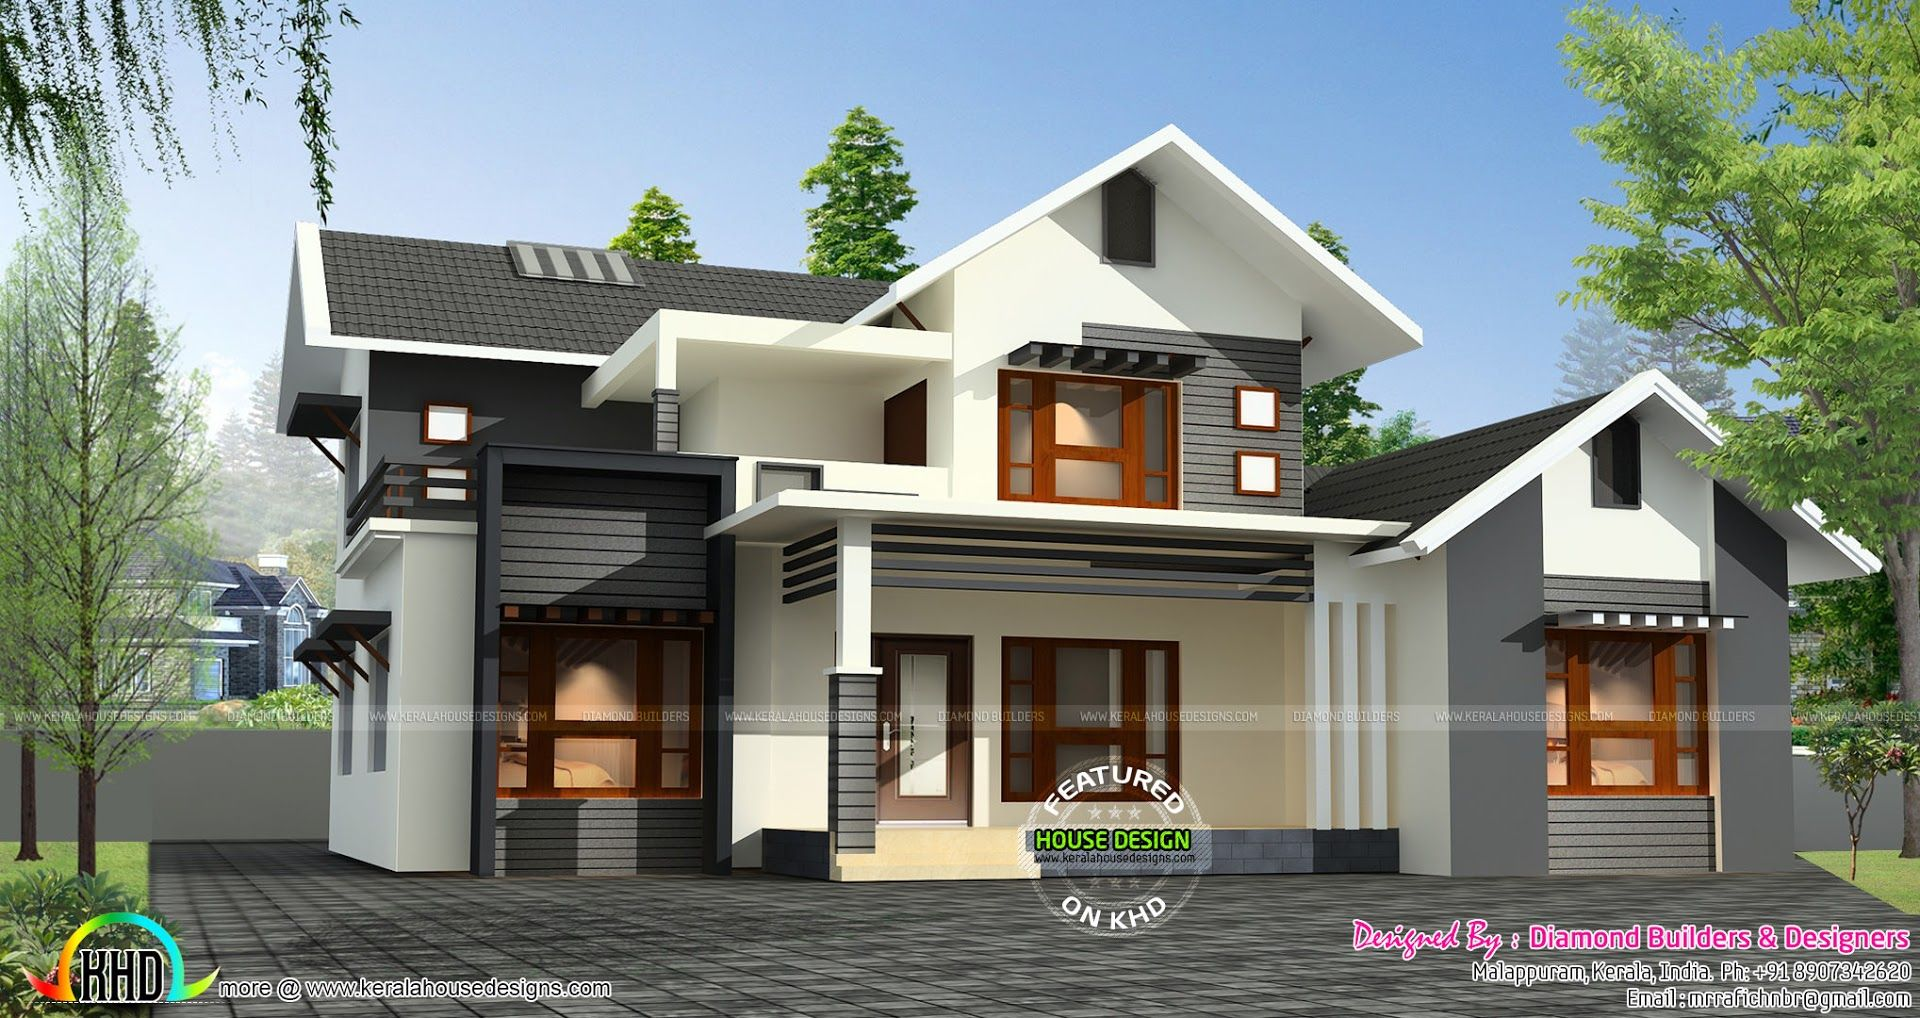 Sq ft bedroom sloping roof mix modern home design by diamond builders and designers from malappuram kerala also pin syam sasidharan on  in pinterest house rh